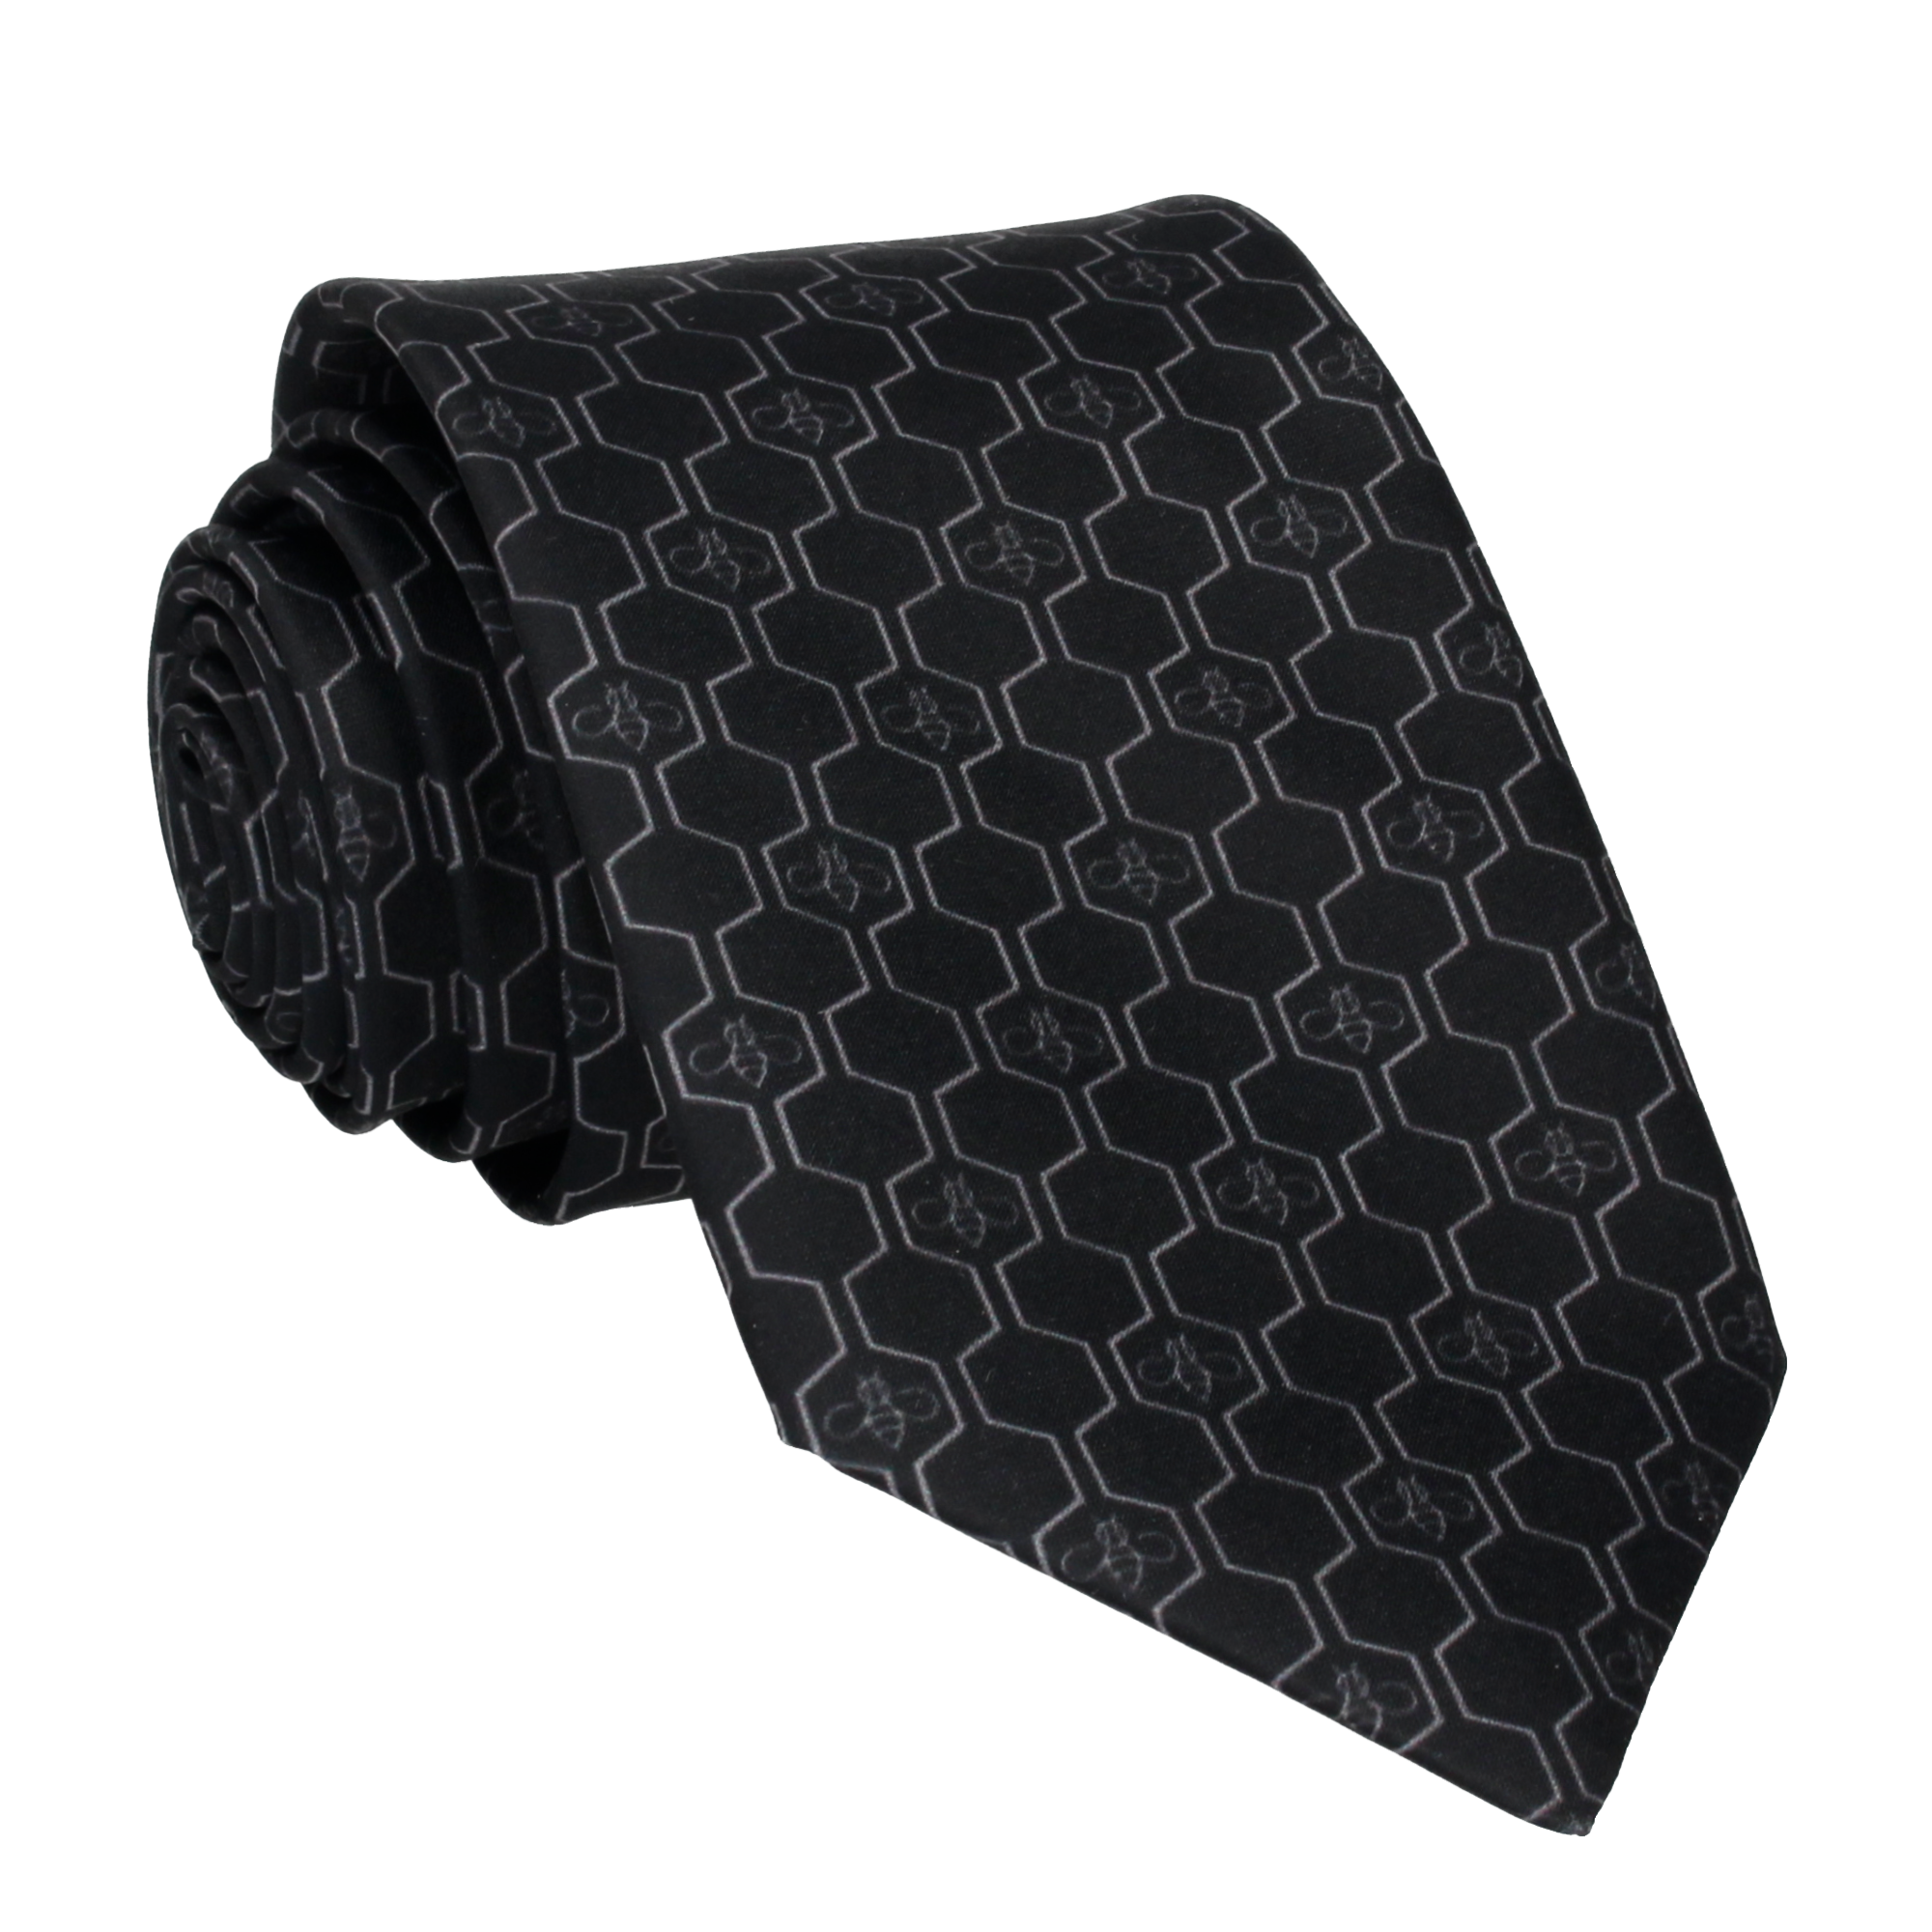 Geo Honeycomb in Black & Grey Tie